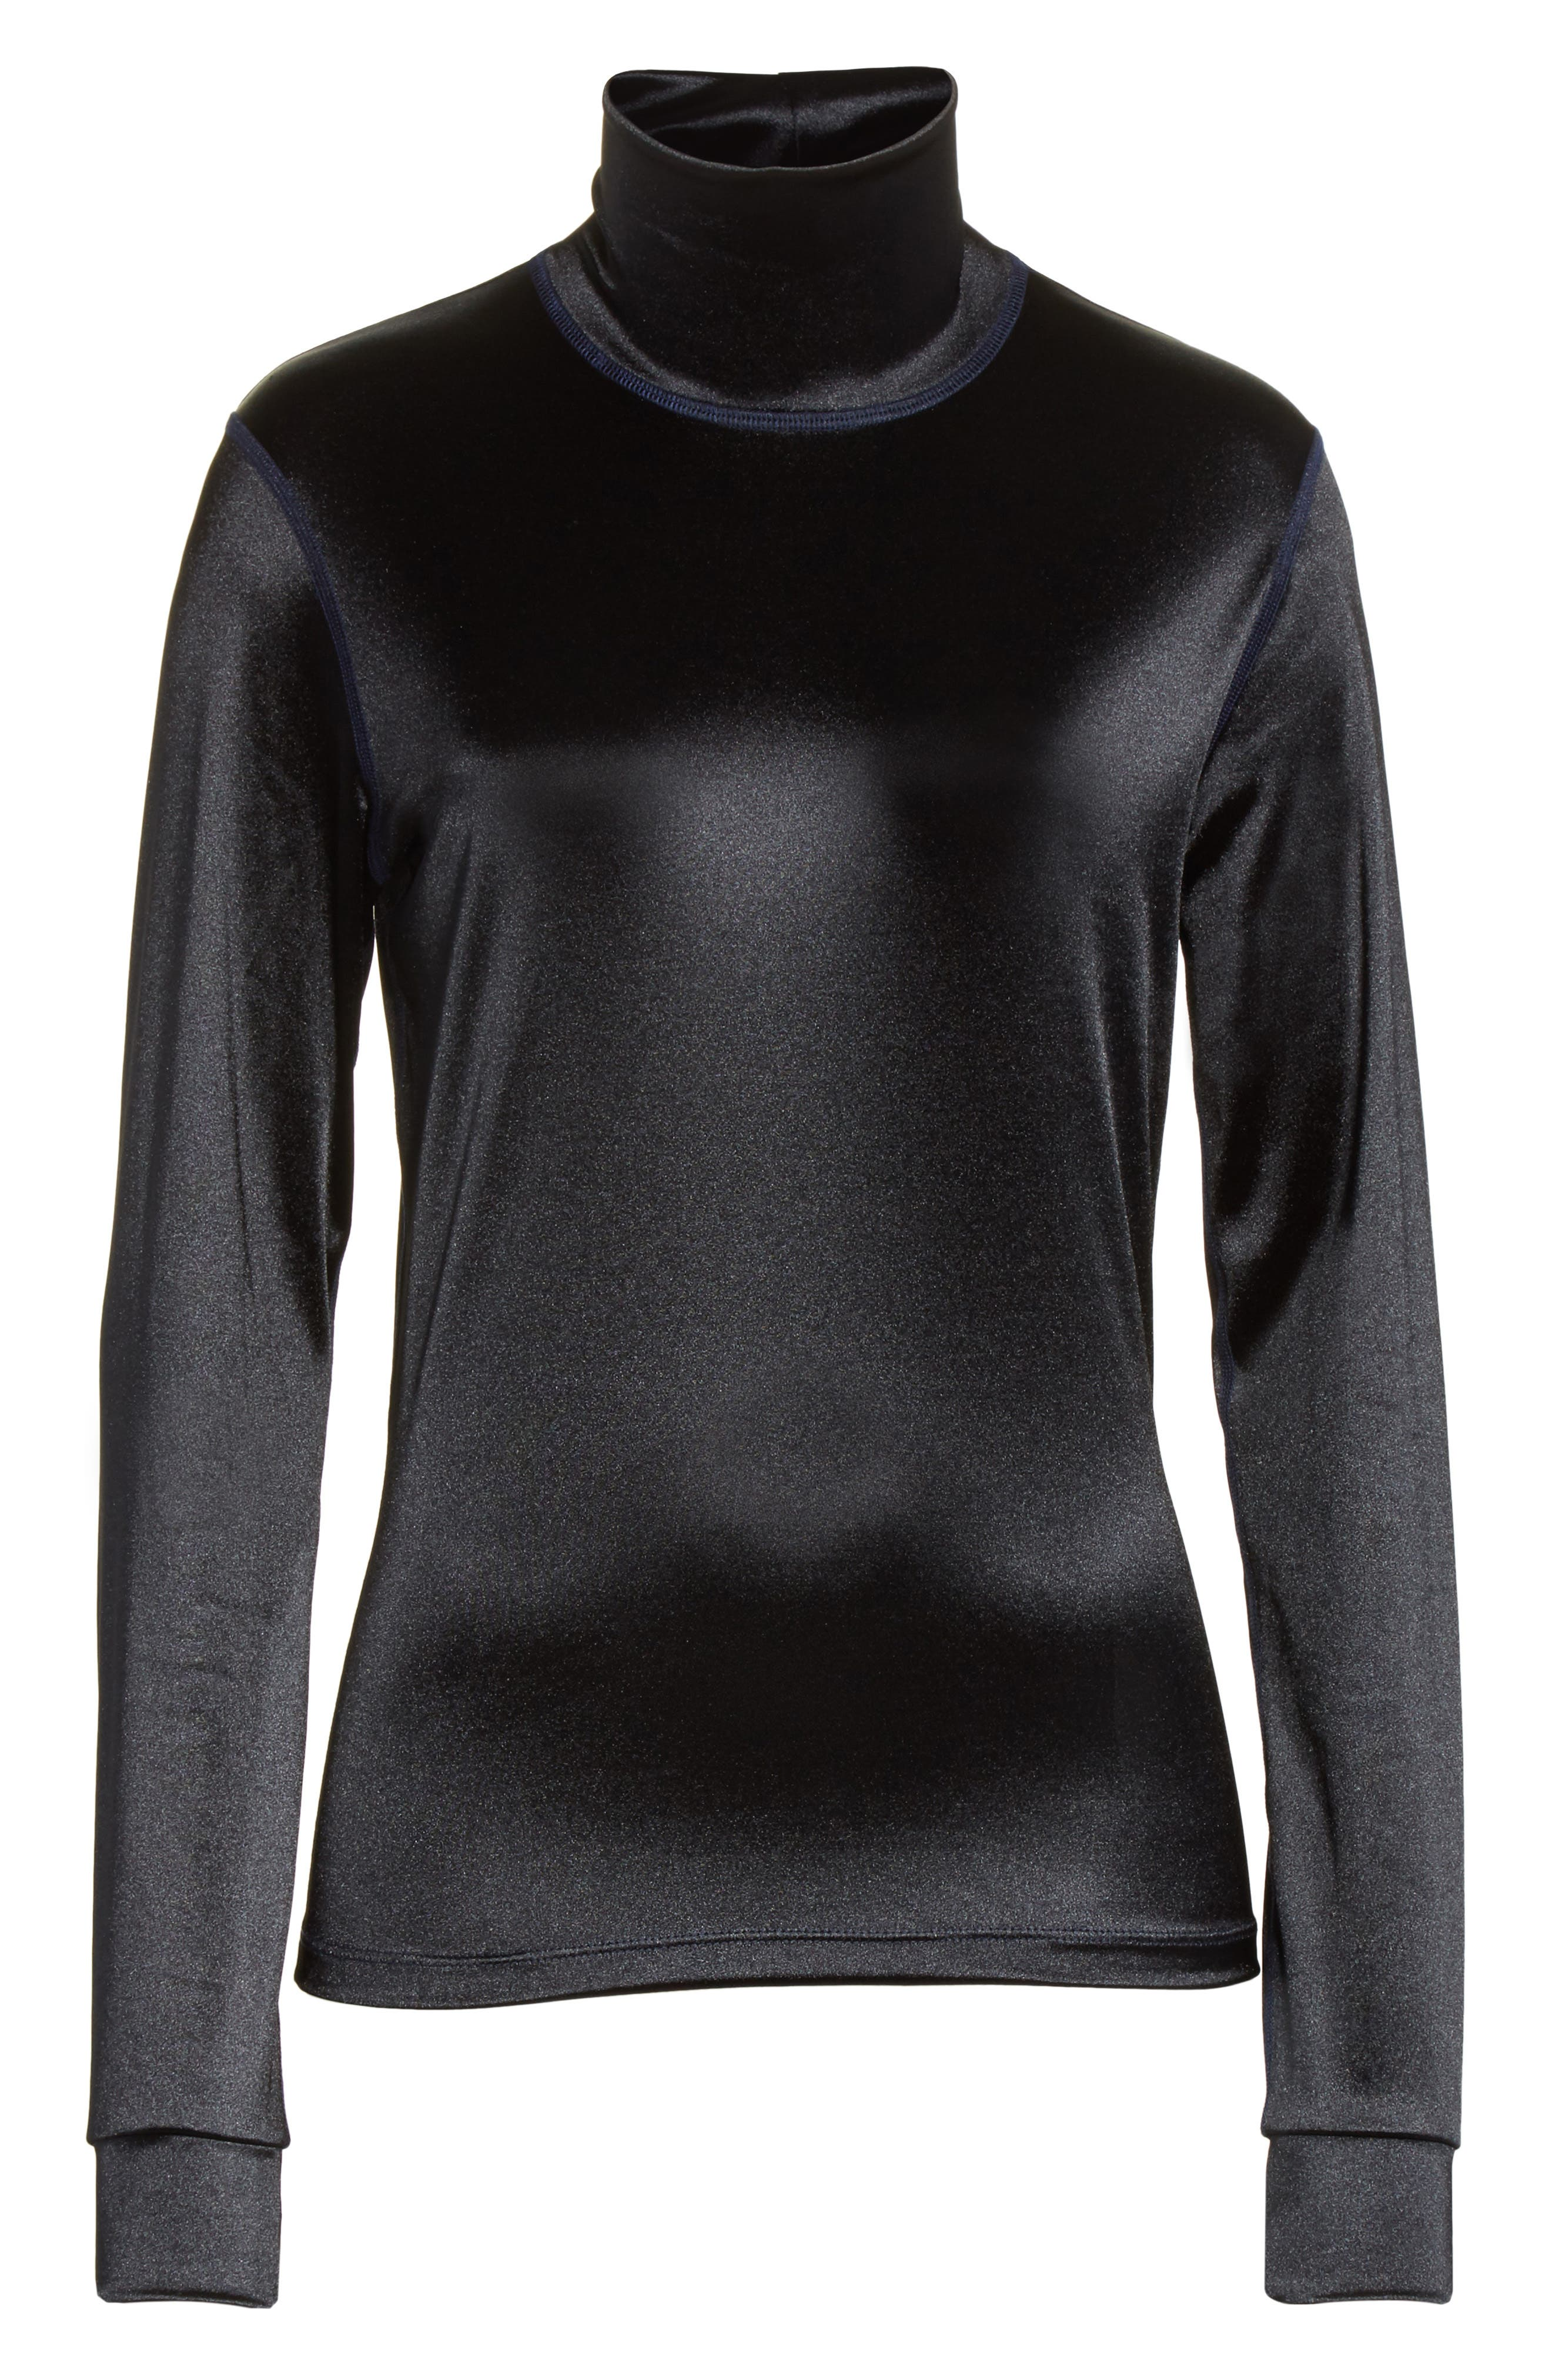 Sleek Stretch Turtleneck,                             Alternate thumbnail 8, color,                             Black